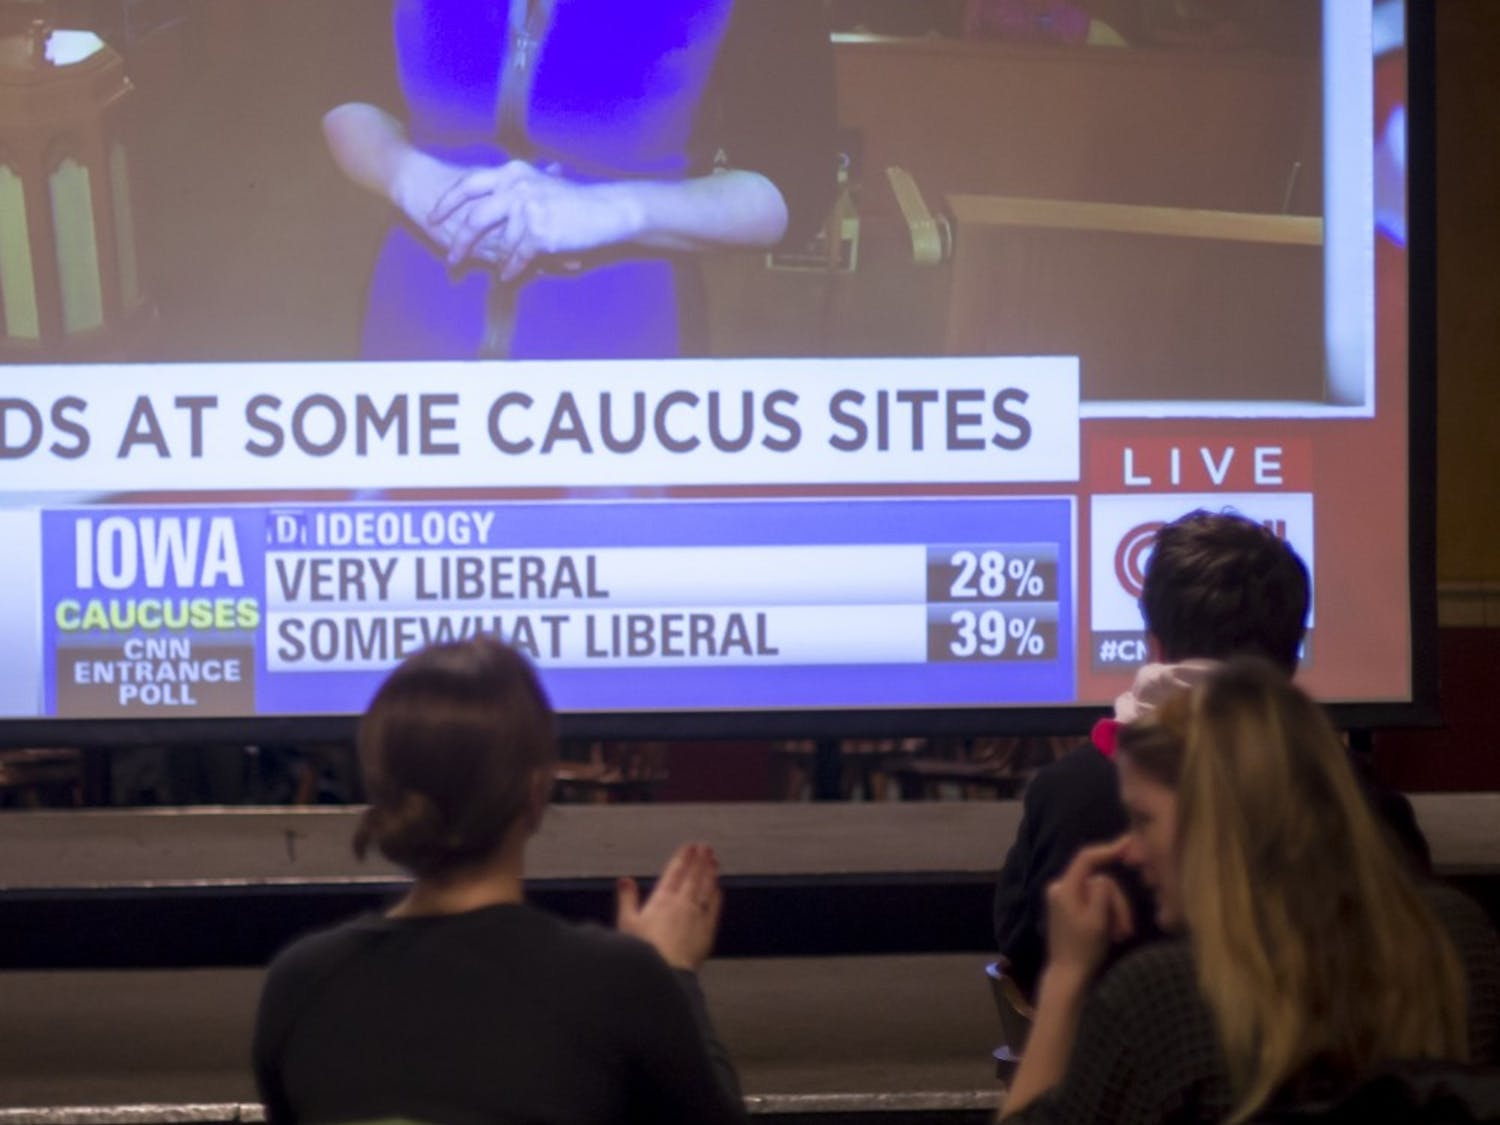 College Democrats of UW-Madison host a watch party to view the Iowa caucus results in real time.